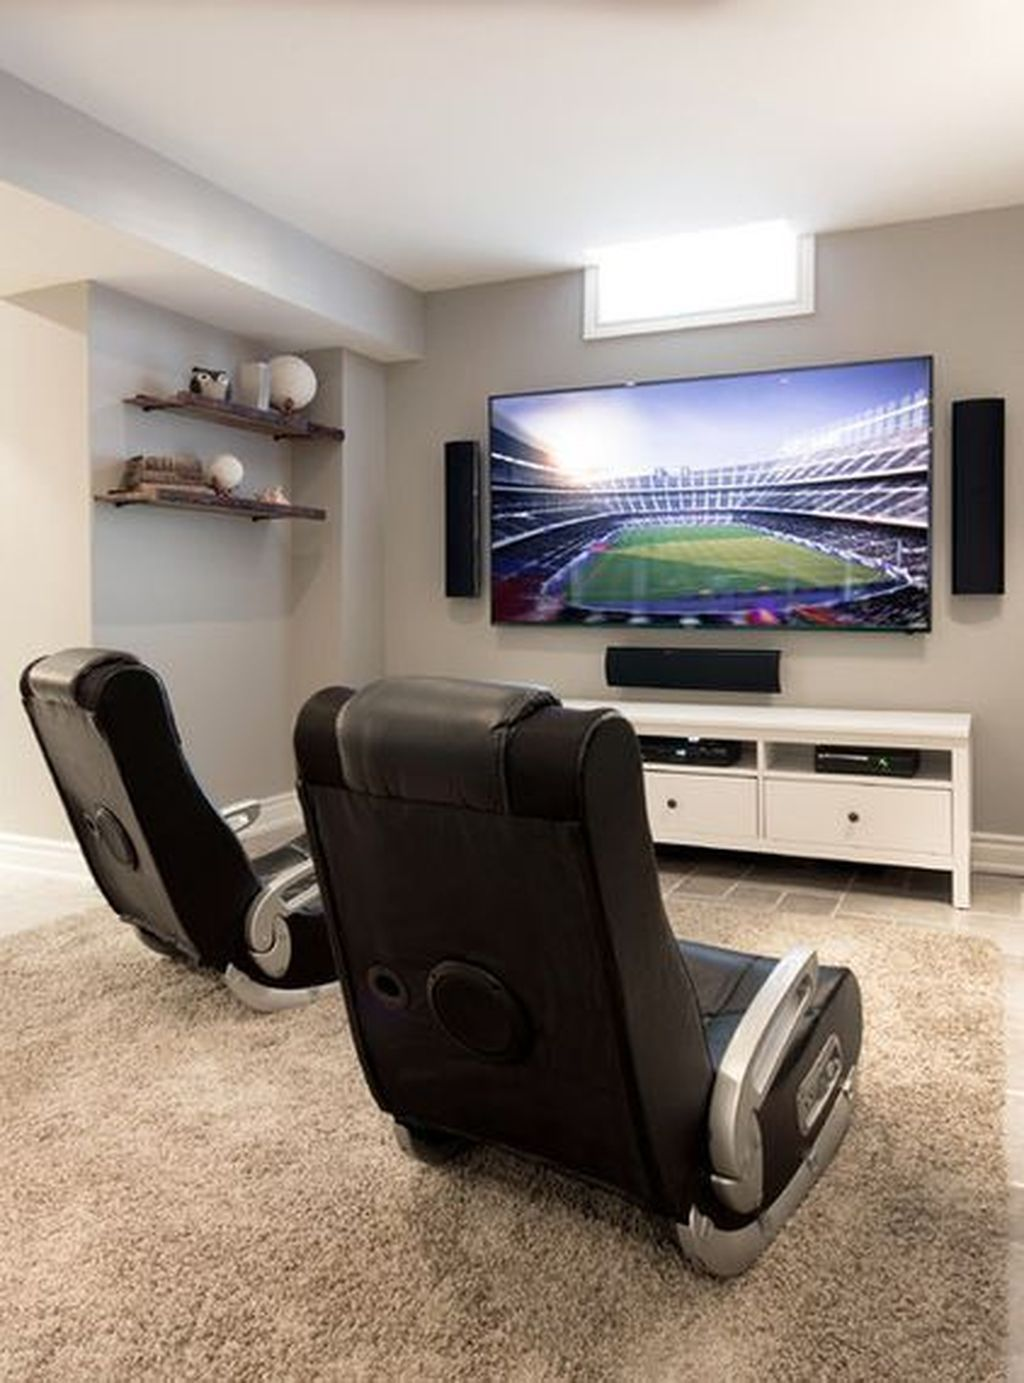 48 Stunning Game Room Design Ideas images